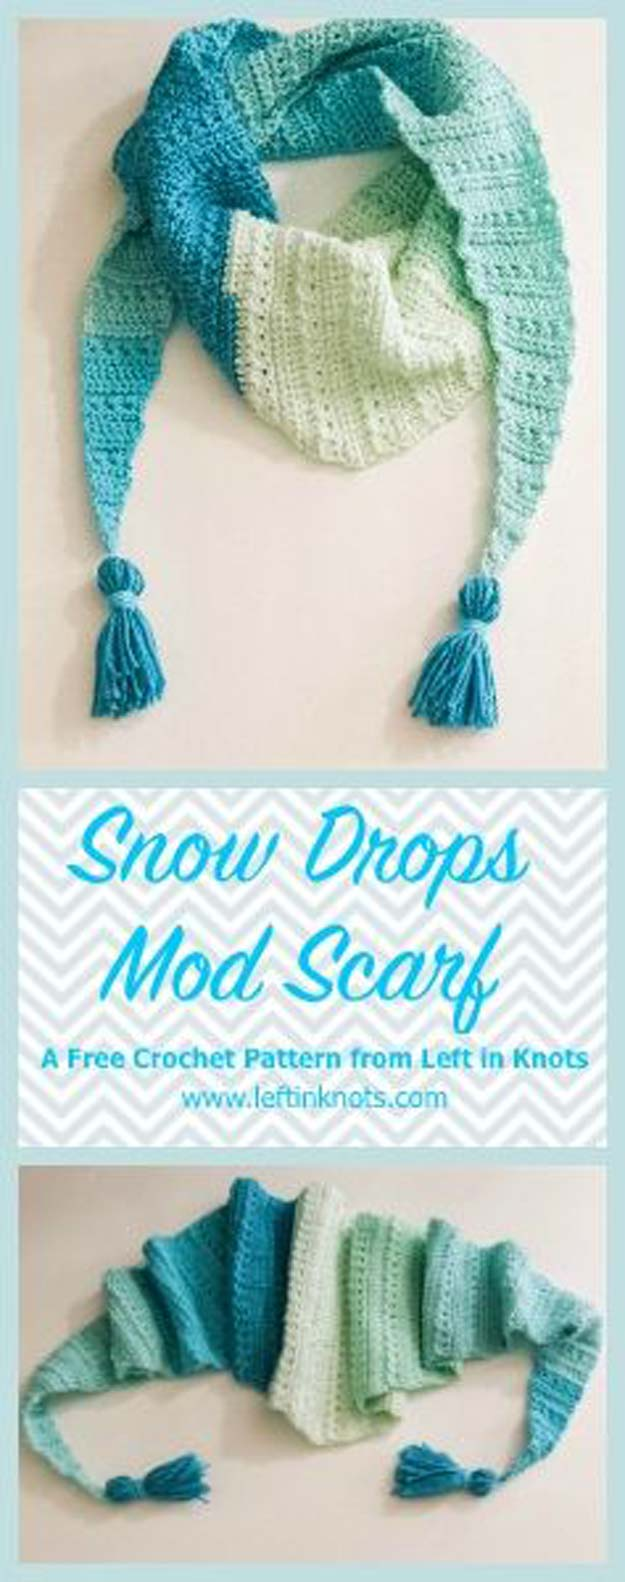 Crochet Patterns and Projects for Teens - Snow Drop Mod Scarf - Best Free Patterns and Tutorials for Crocheting Cute DIY Gifts, Room Decor and Accessories - How To for Beginners - Learn How To Make a Headband, Scarf, Hat, Animals and Clothes DIY Projects and Crafts for Teenagers #crochet #crafts #teencrafts #freecrochet #crochetpatterns